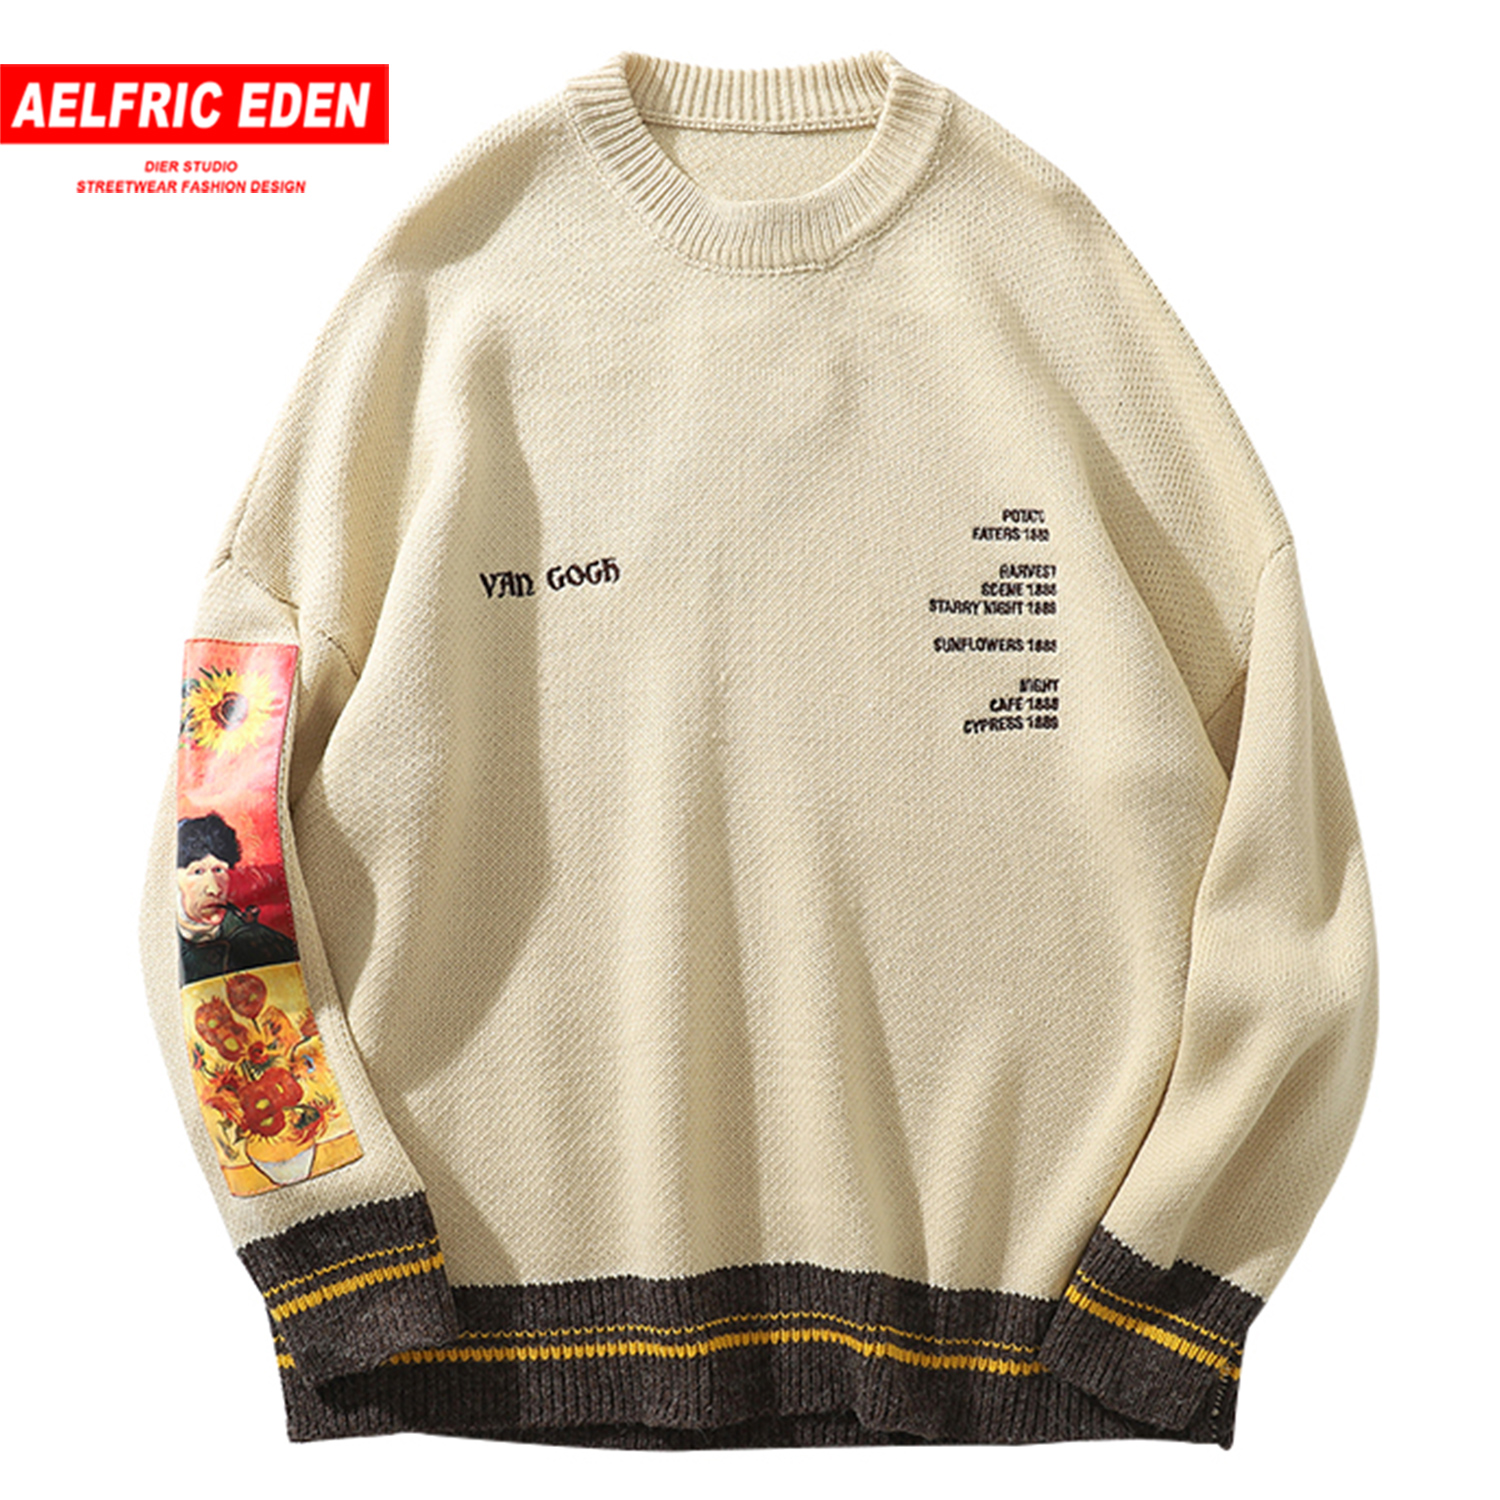 Aelfric Eden Hip Hop Sweater Pullover Men Van Gogh Painting Embroidery Knitted Sweater Harajuku Streetwear Tops Casual Pullover